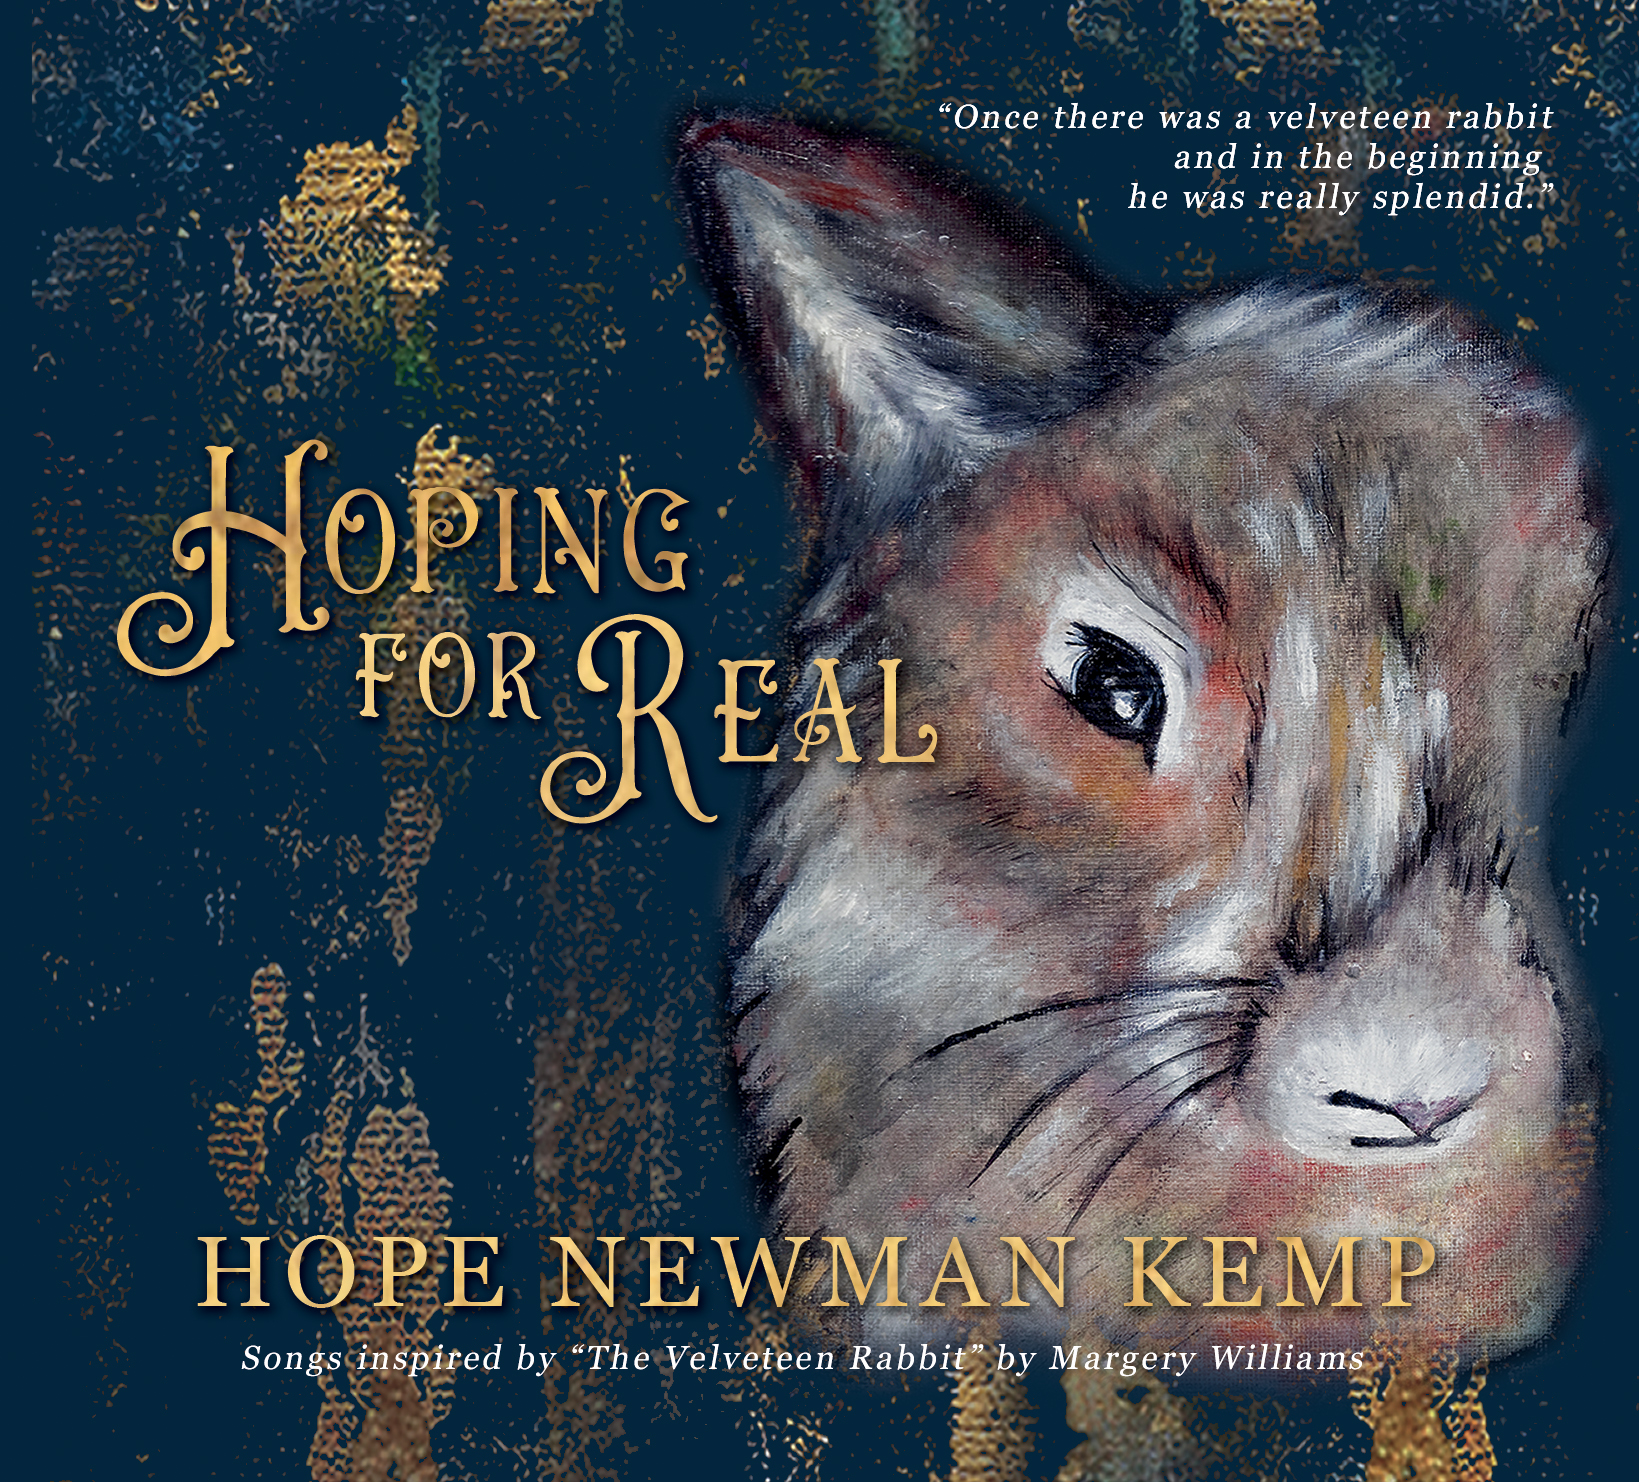 Hoping For Real; songs inspired by The Velveteen Rabbit.  A concept album showcasing thematic and song writing for the stage and is designed to attend the beloved book by Margery Williams.